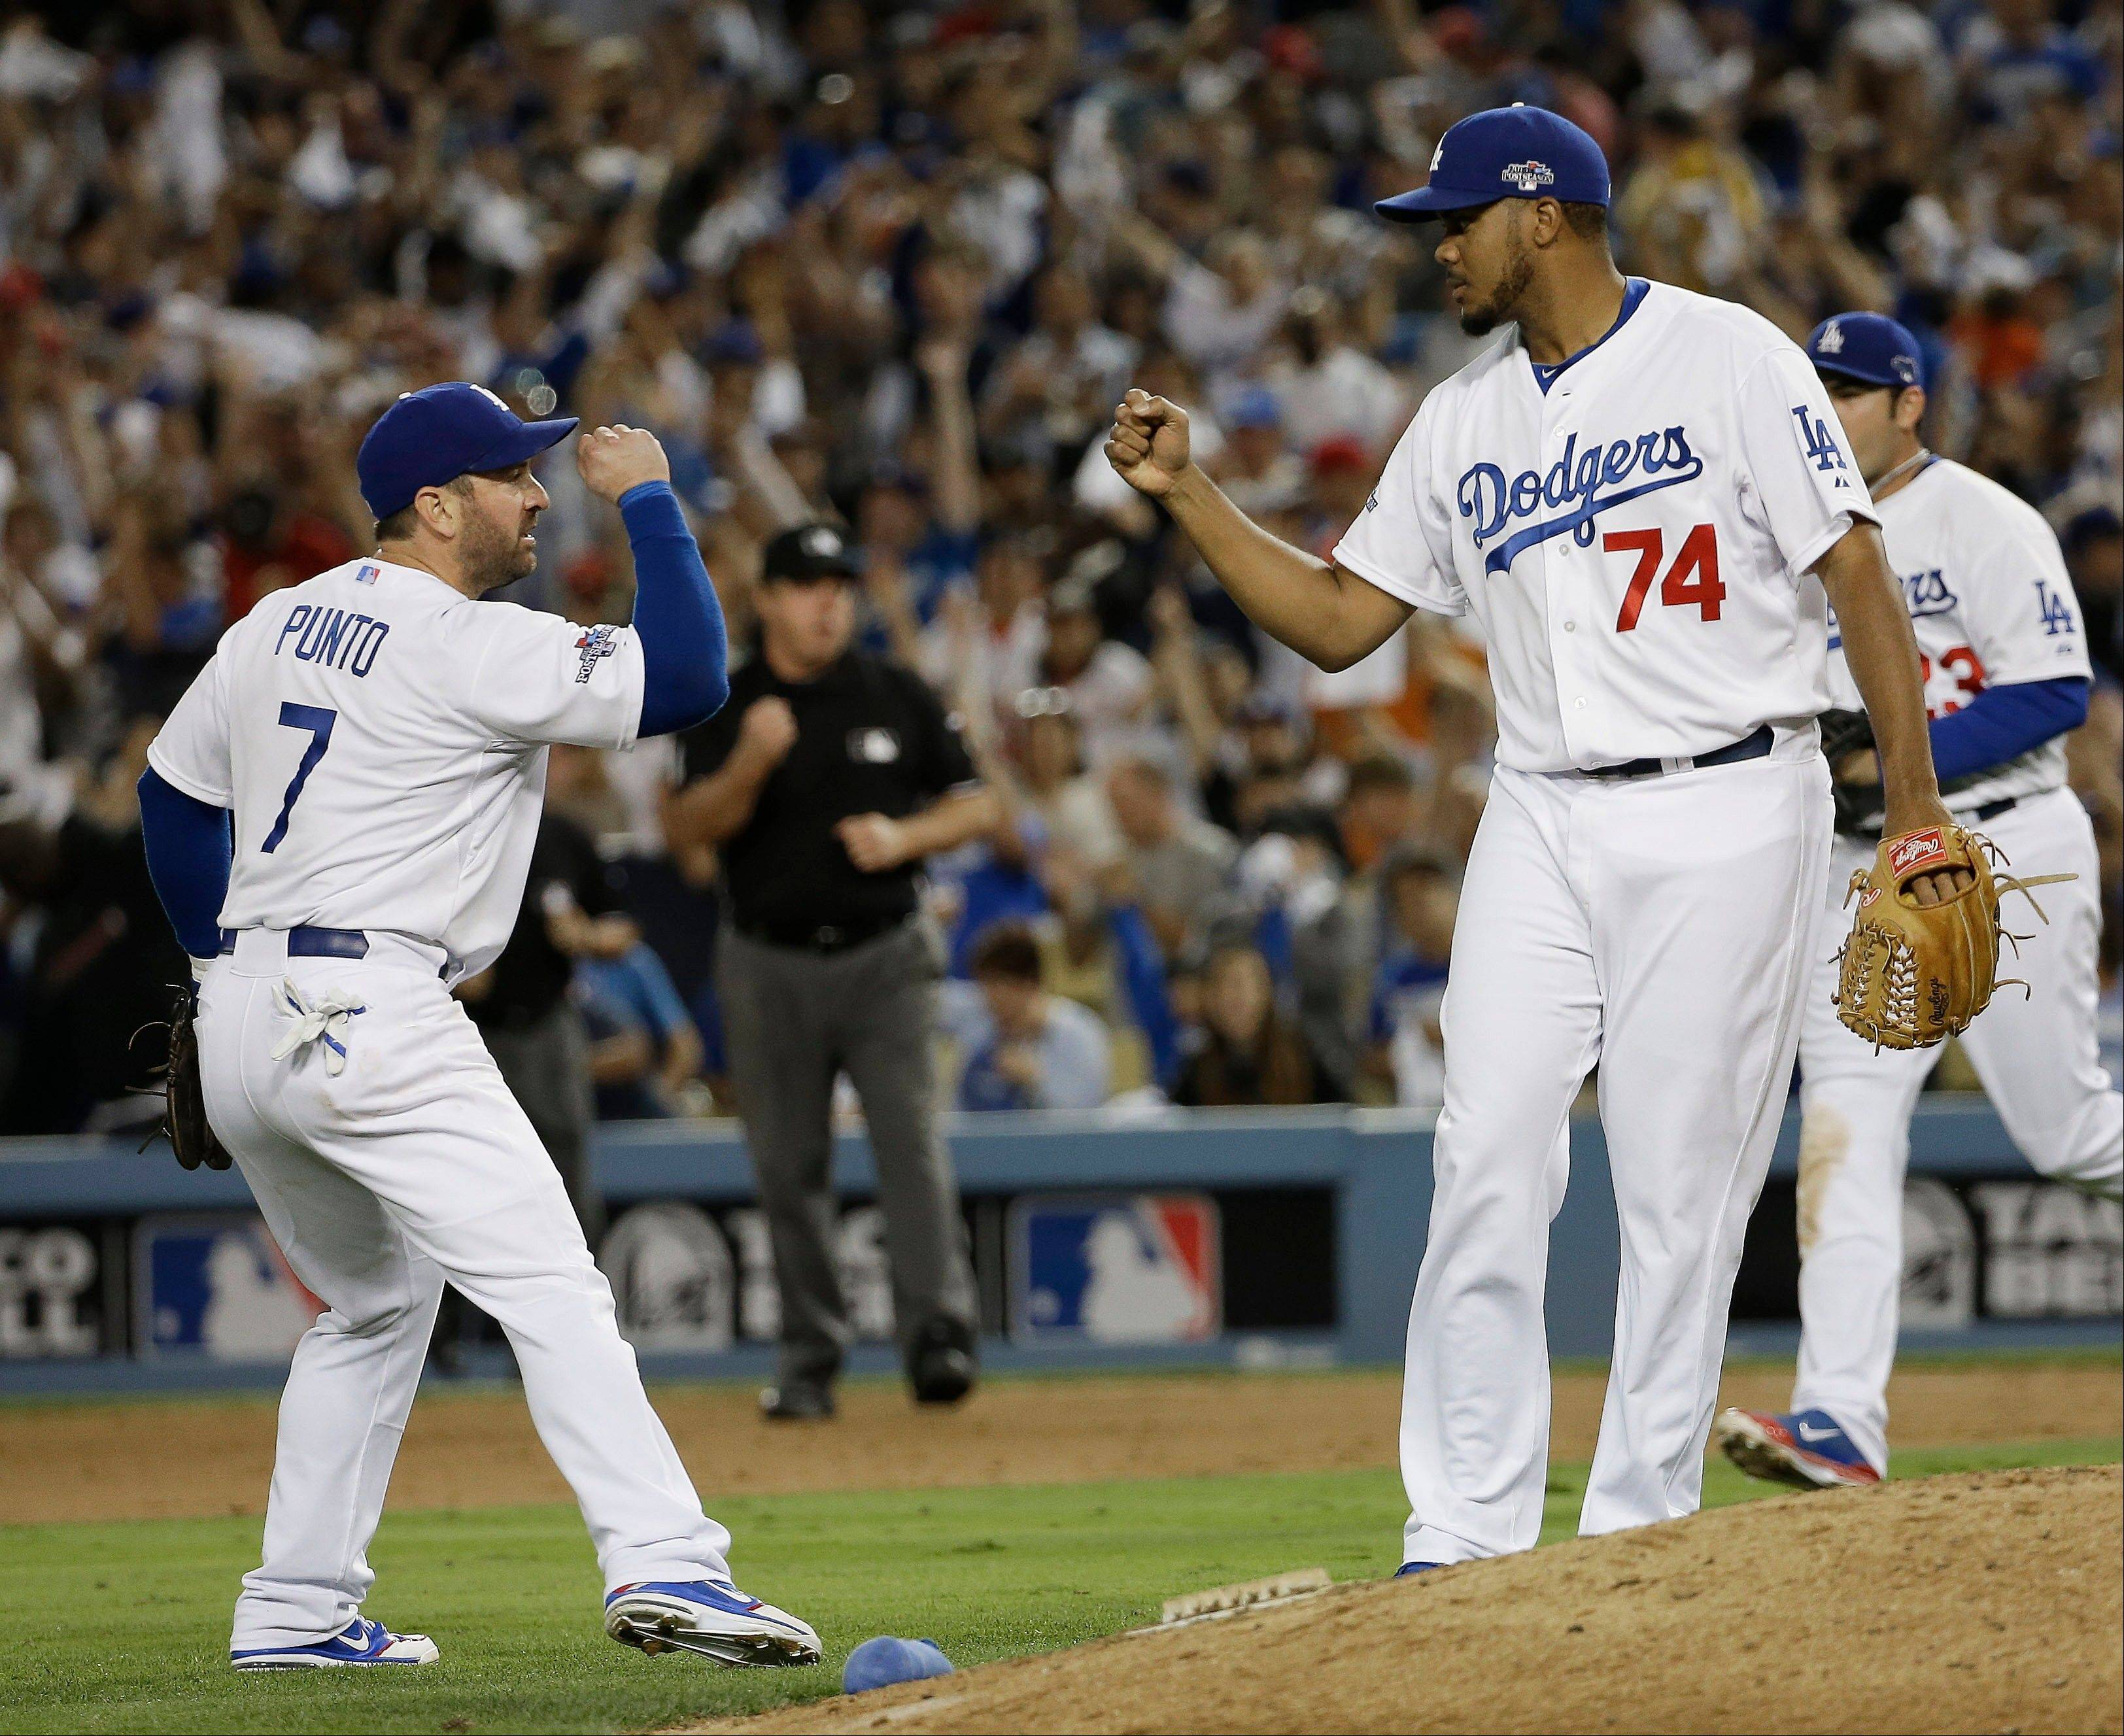 The Dodgers' Nick Punto (7) and Kenley Jansen celebrate after Game 3.